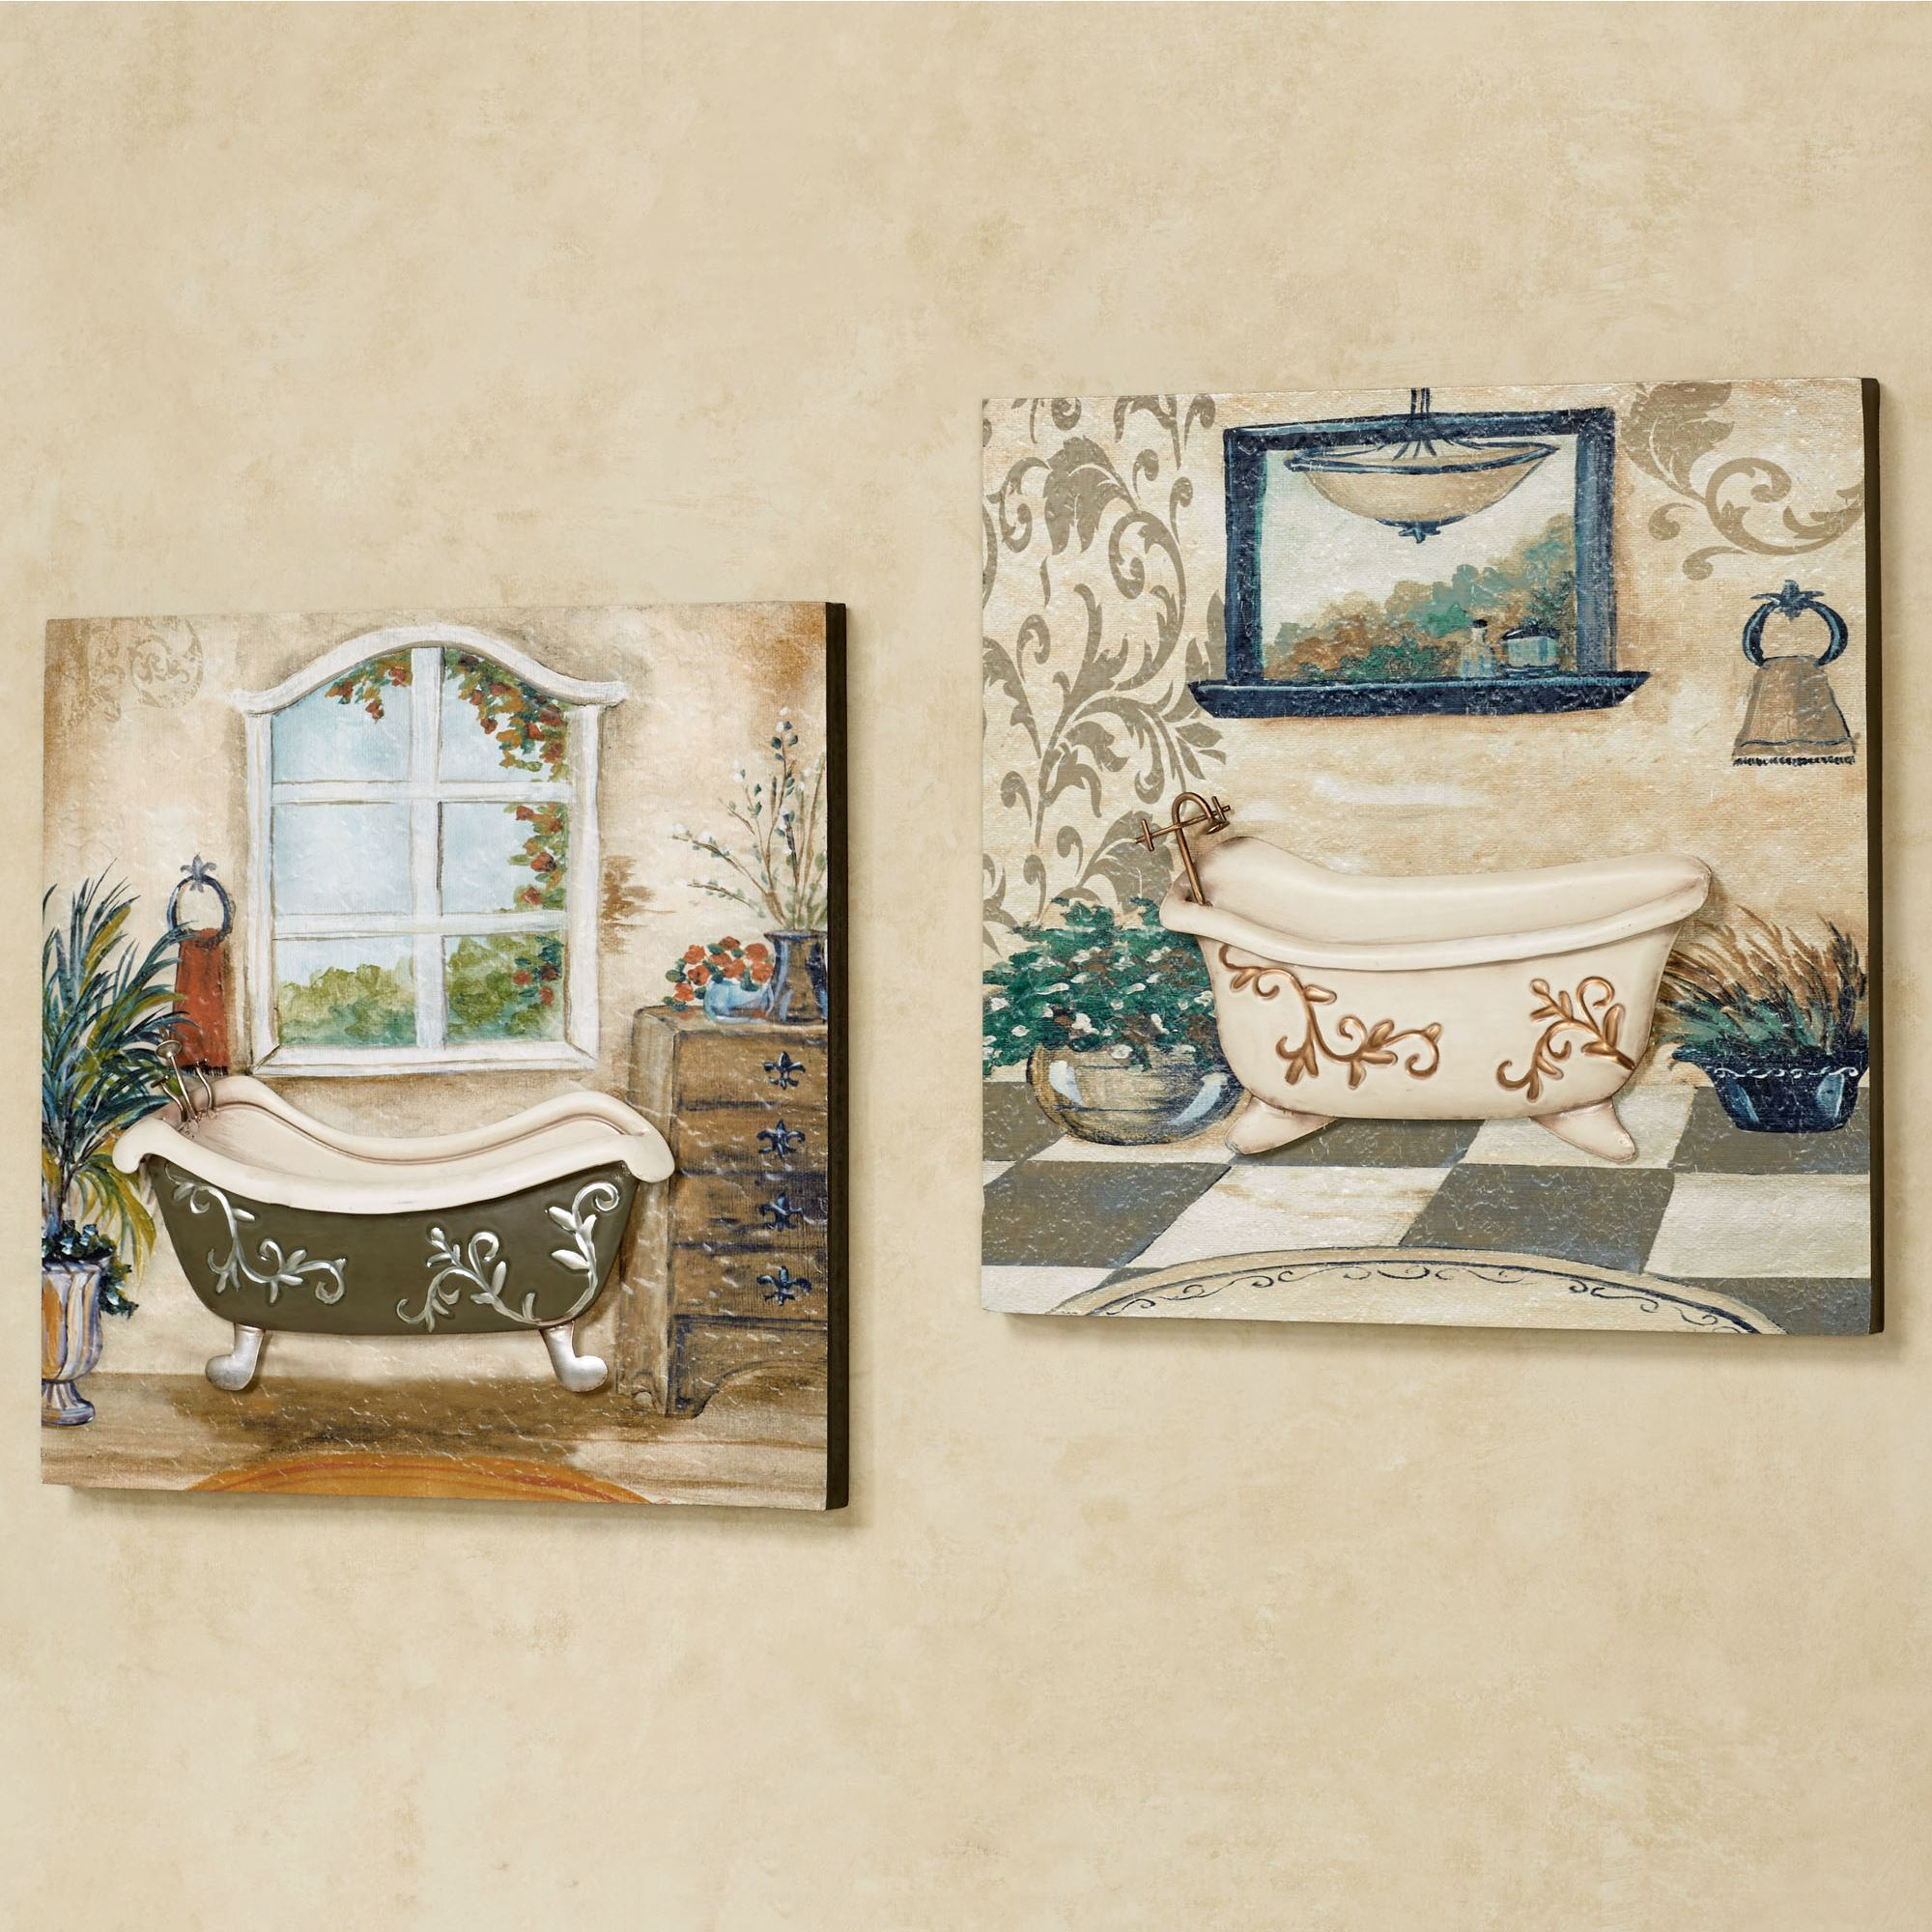 Salle de bain bathroom wall art set for Bathroom wall decor images